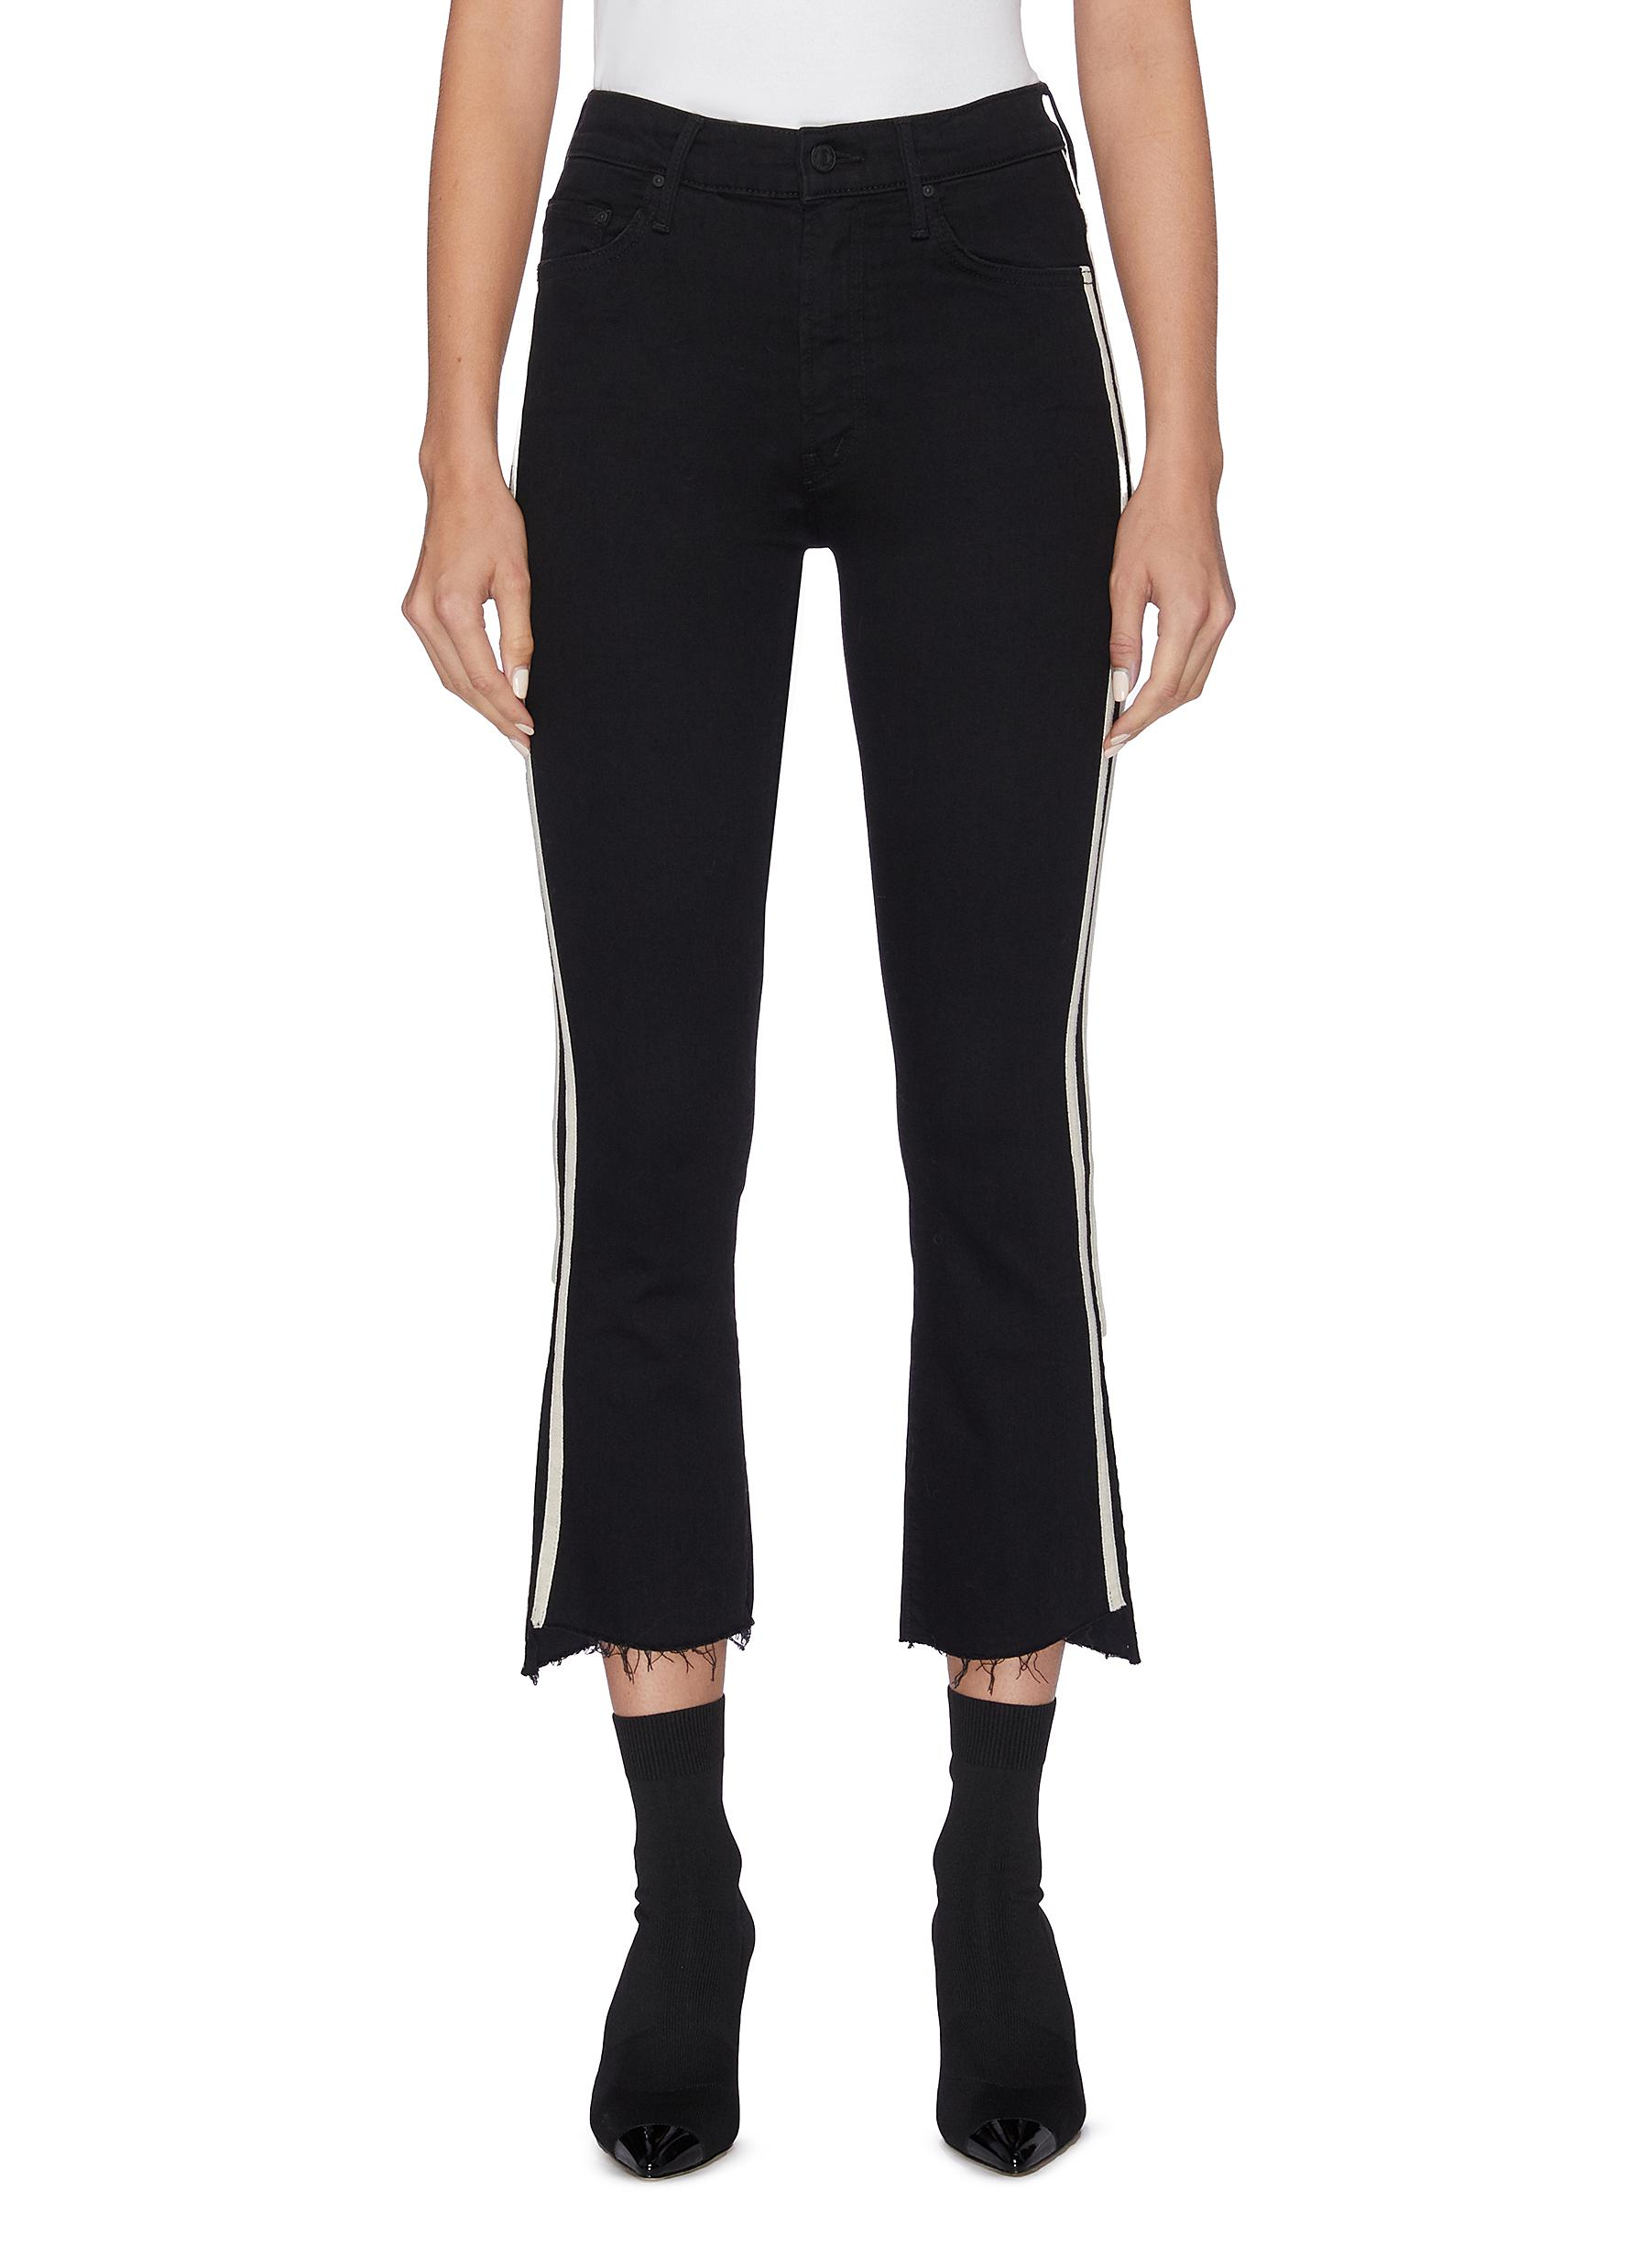 The Insider Crop Step Fray stripe outseam jeans by Mother